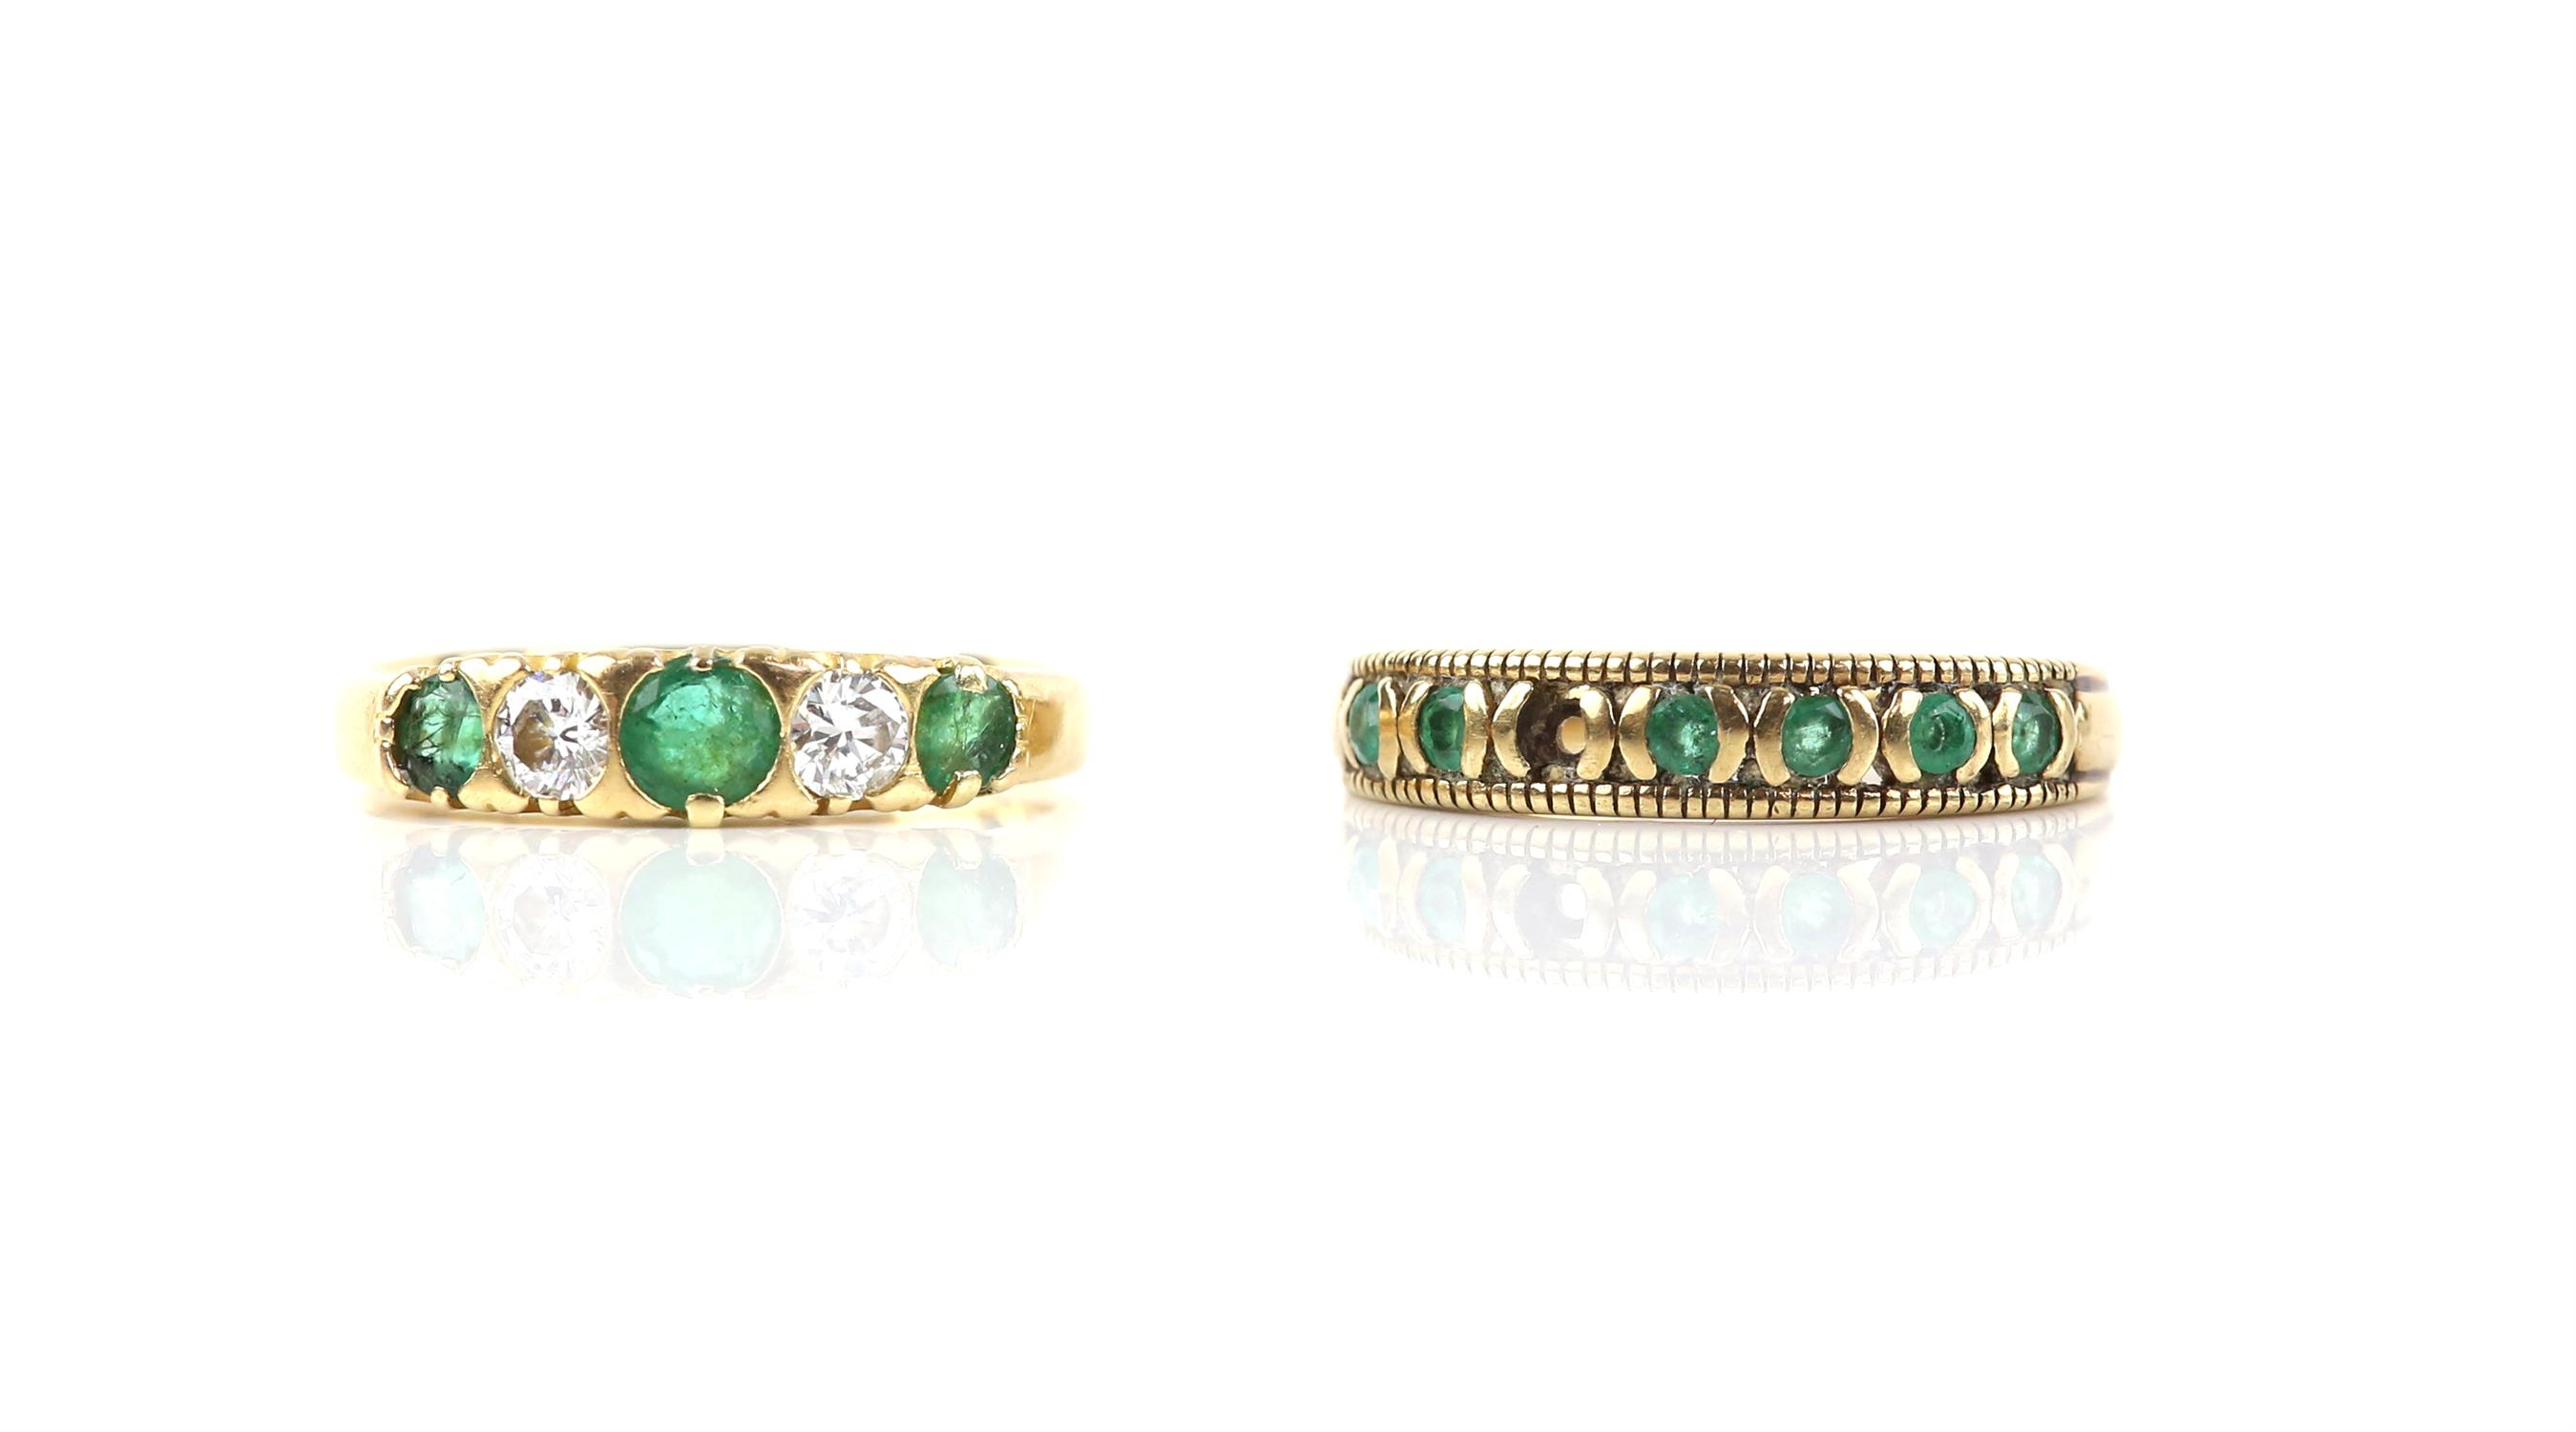 Emerald and diamond five stone ring, set with three round cut emeralds and two round brilliant cut